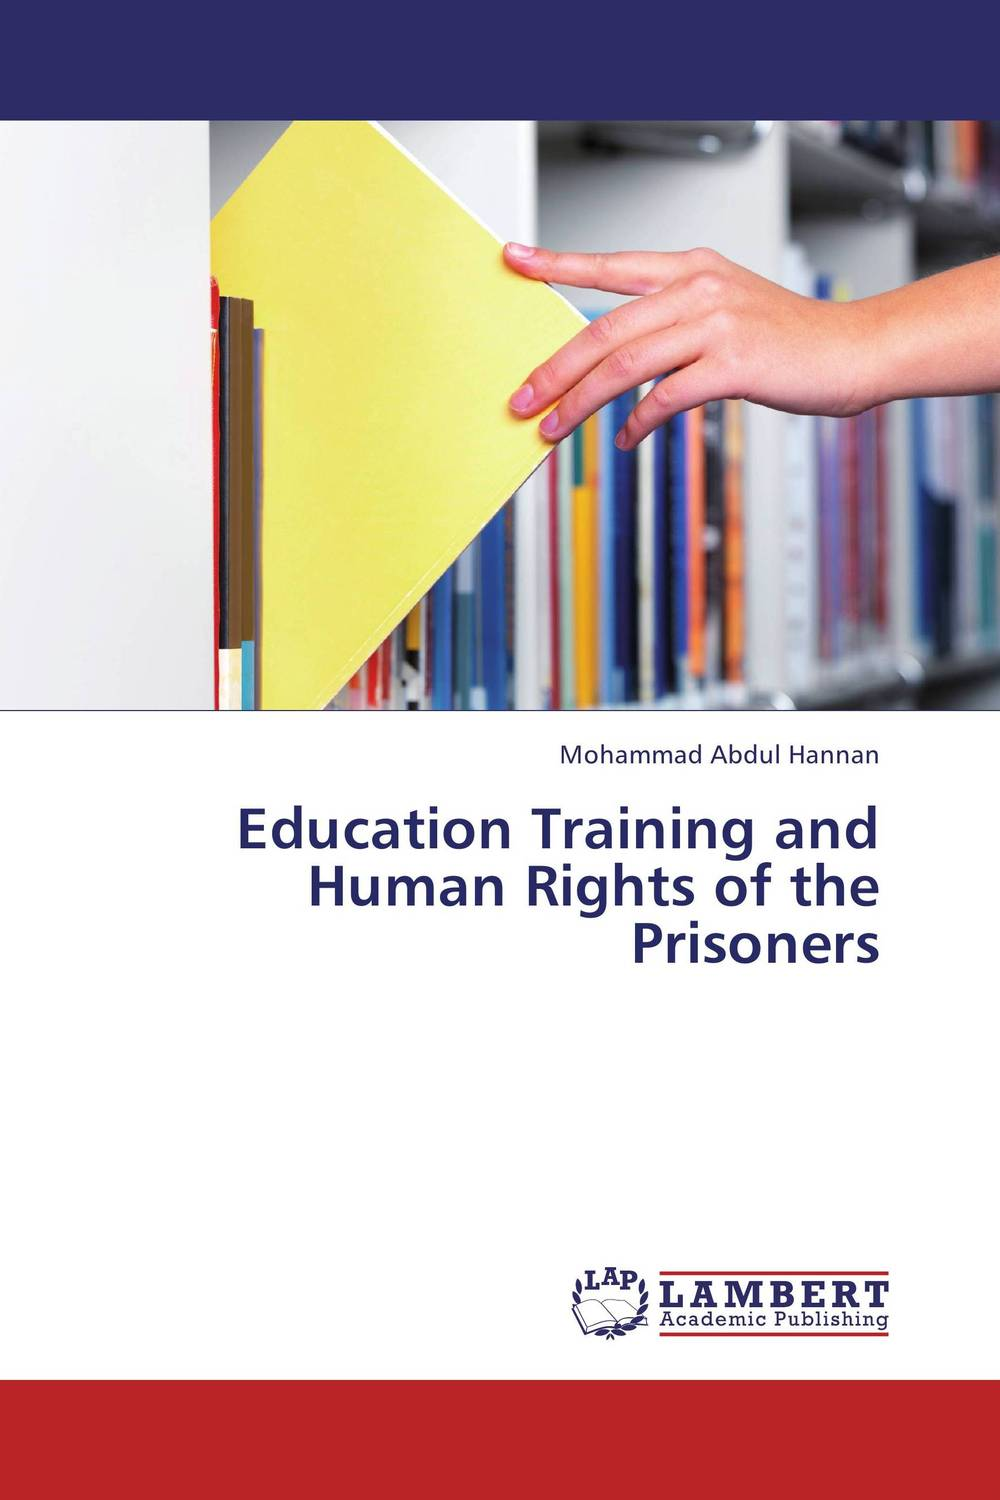 Education Training and Human Rights of the Prisoners education training and human rights of the prisoners